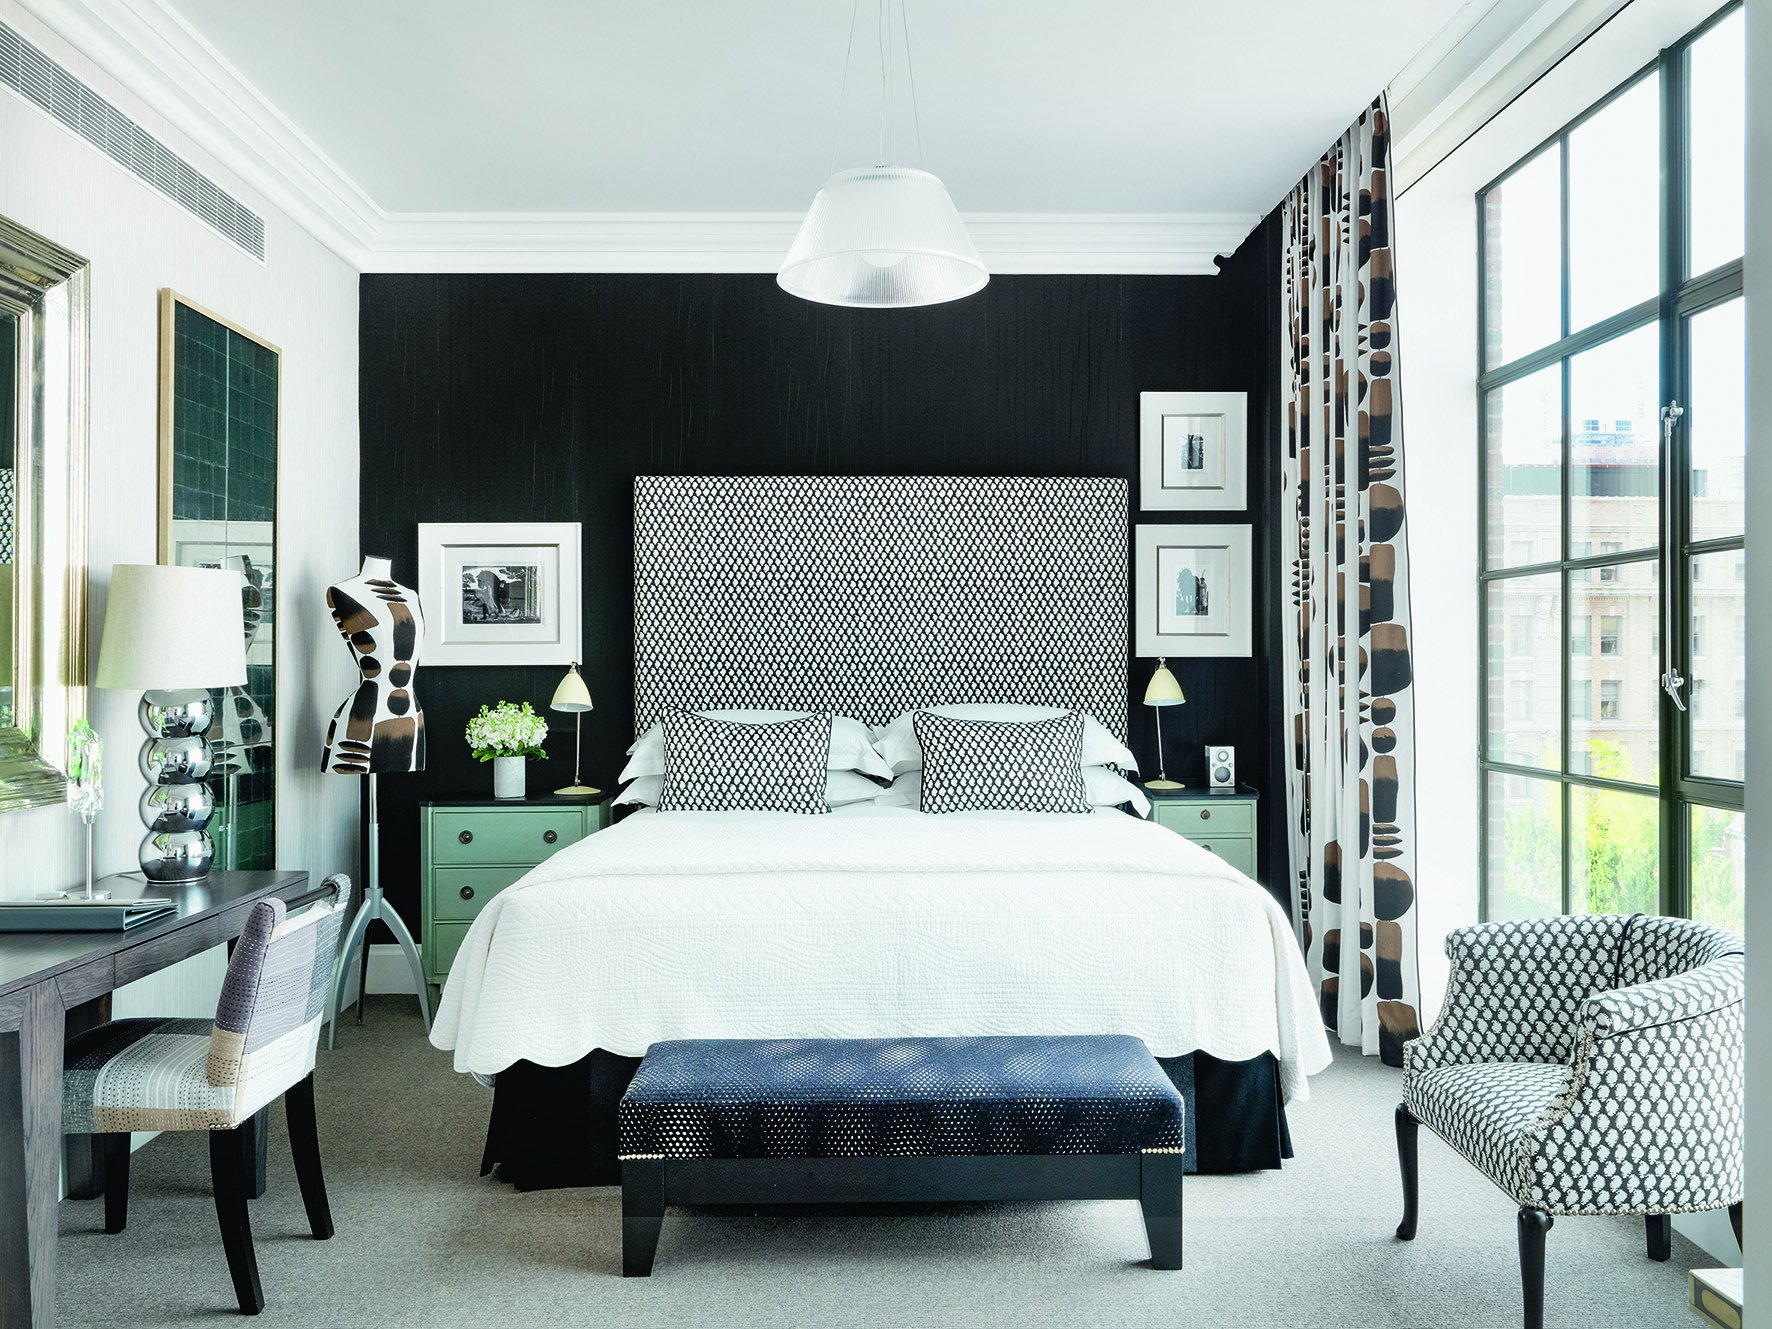 Eighty Four Rooms: A Unique Collection of the Most Stylish & Individual Boutique Hotels